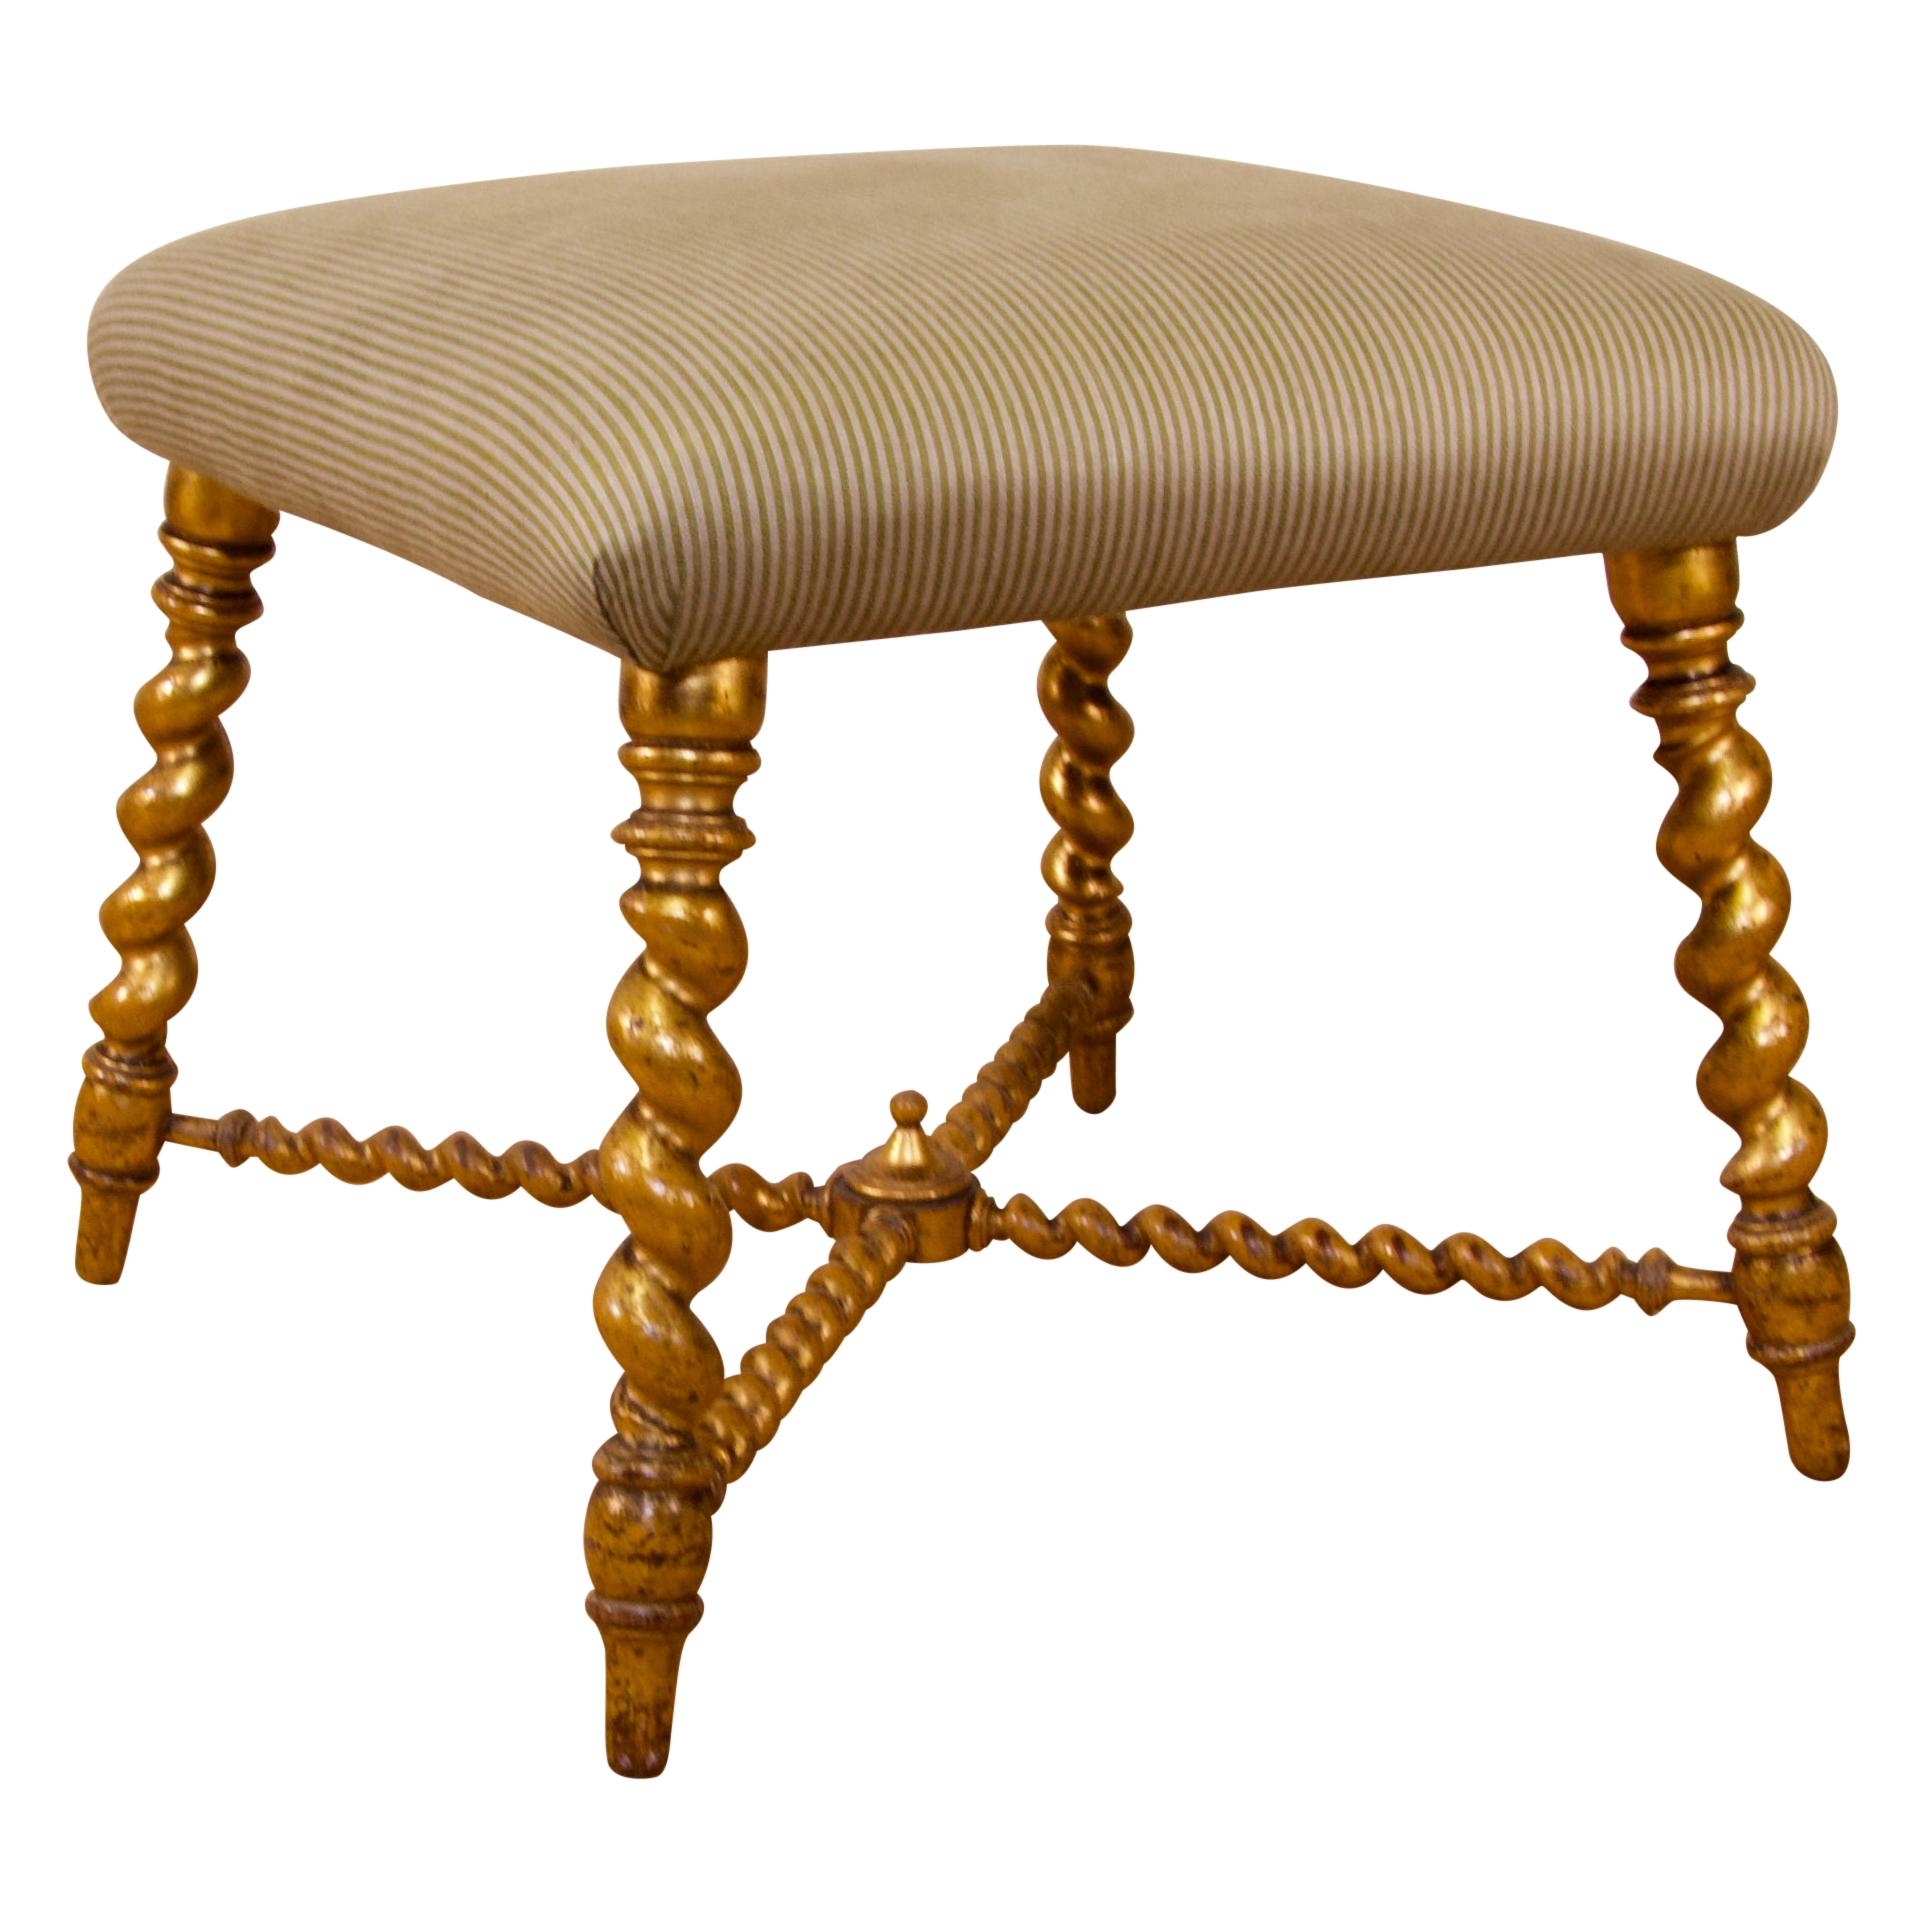 19th Century French Square Giltwood and Upholstered Stool Ottoman, Coffee Table